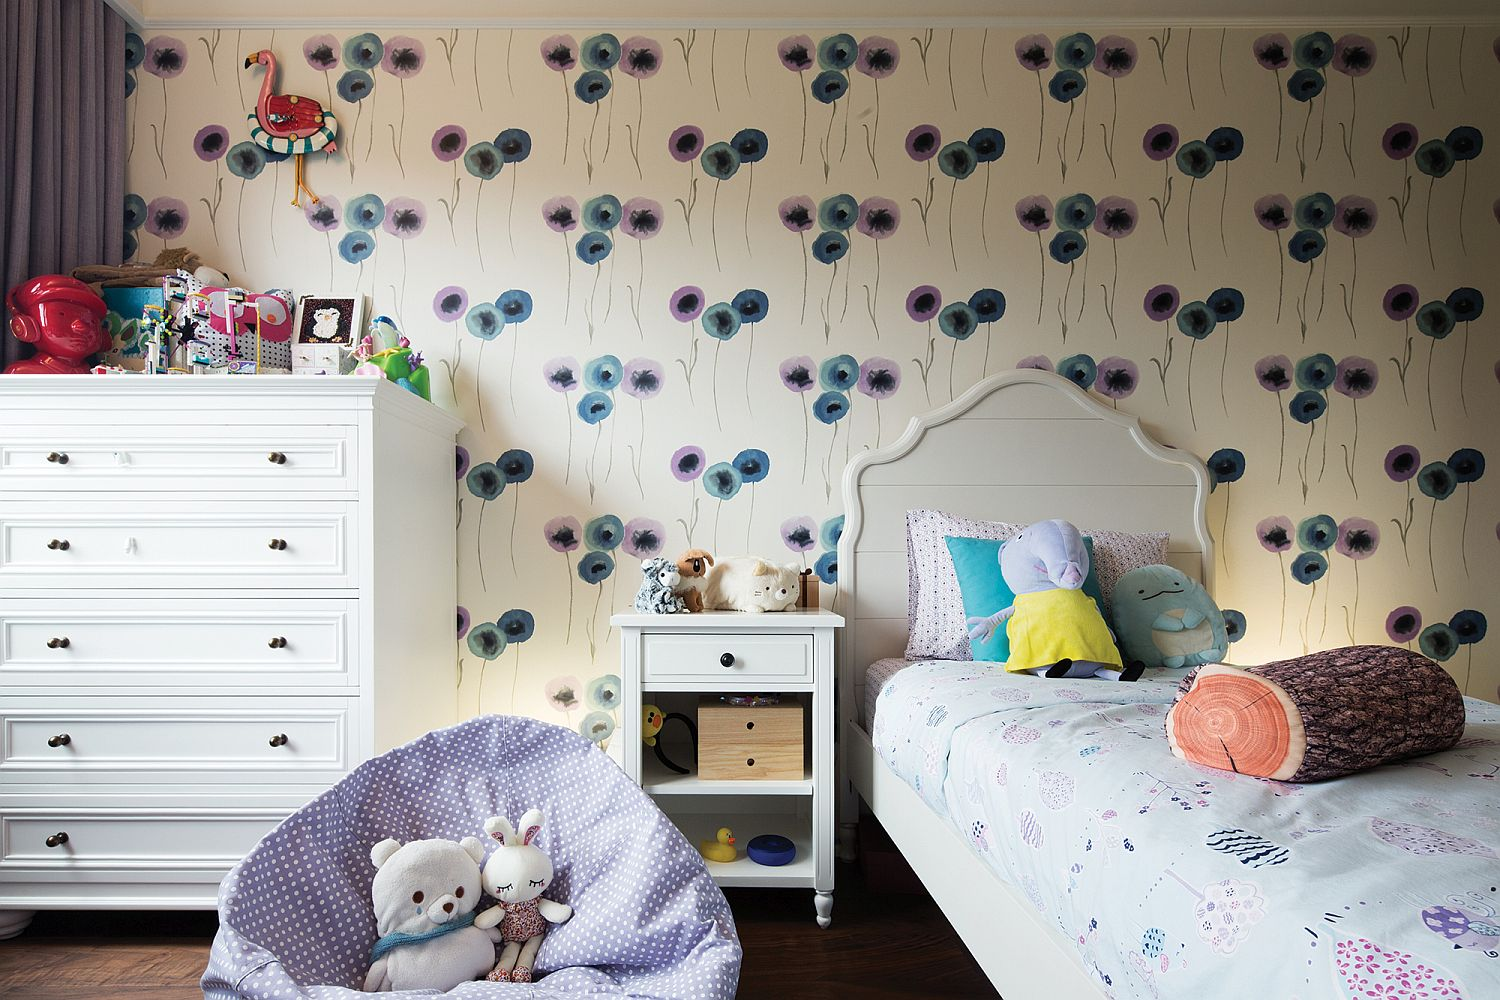 Modern girl's bedroom idea with wallpapered backdrop and smart decor